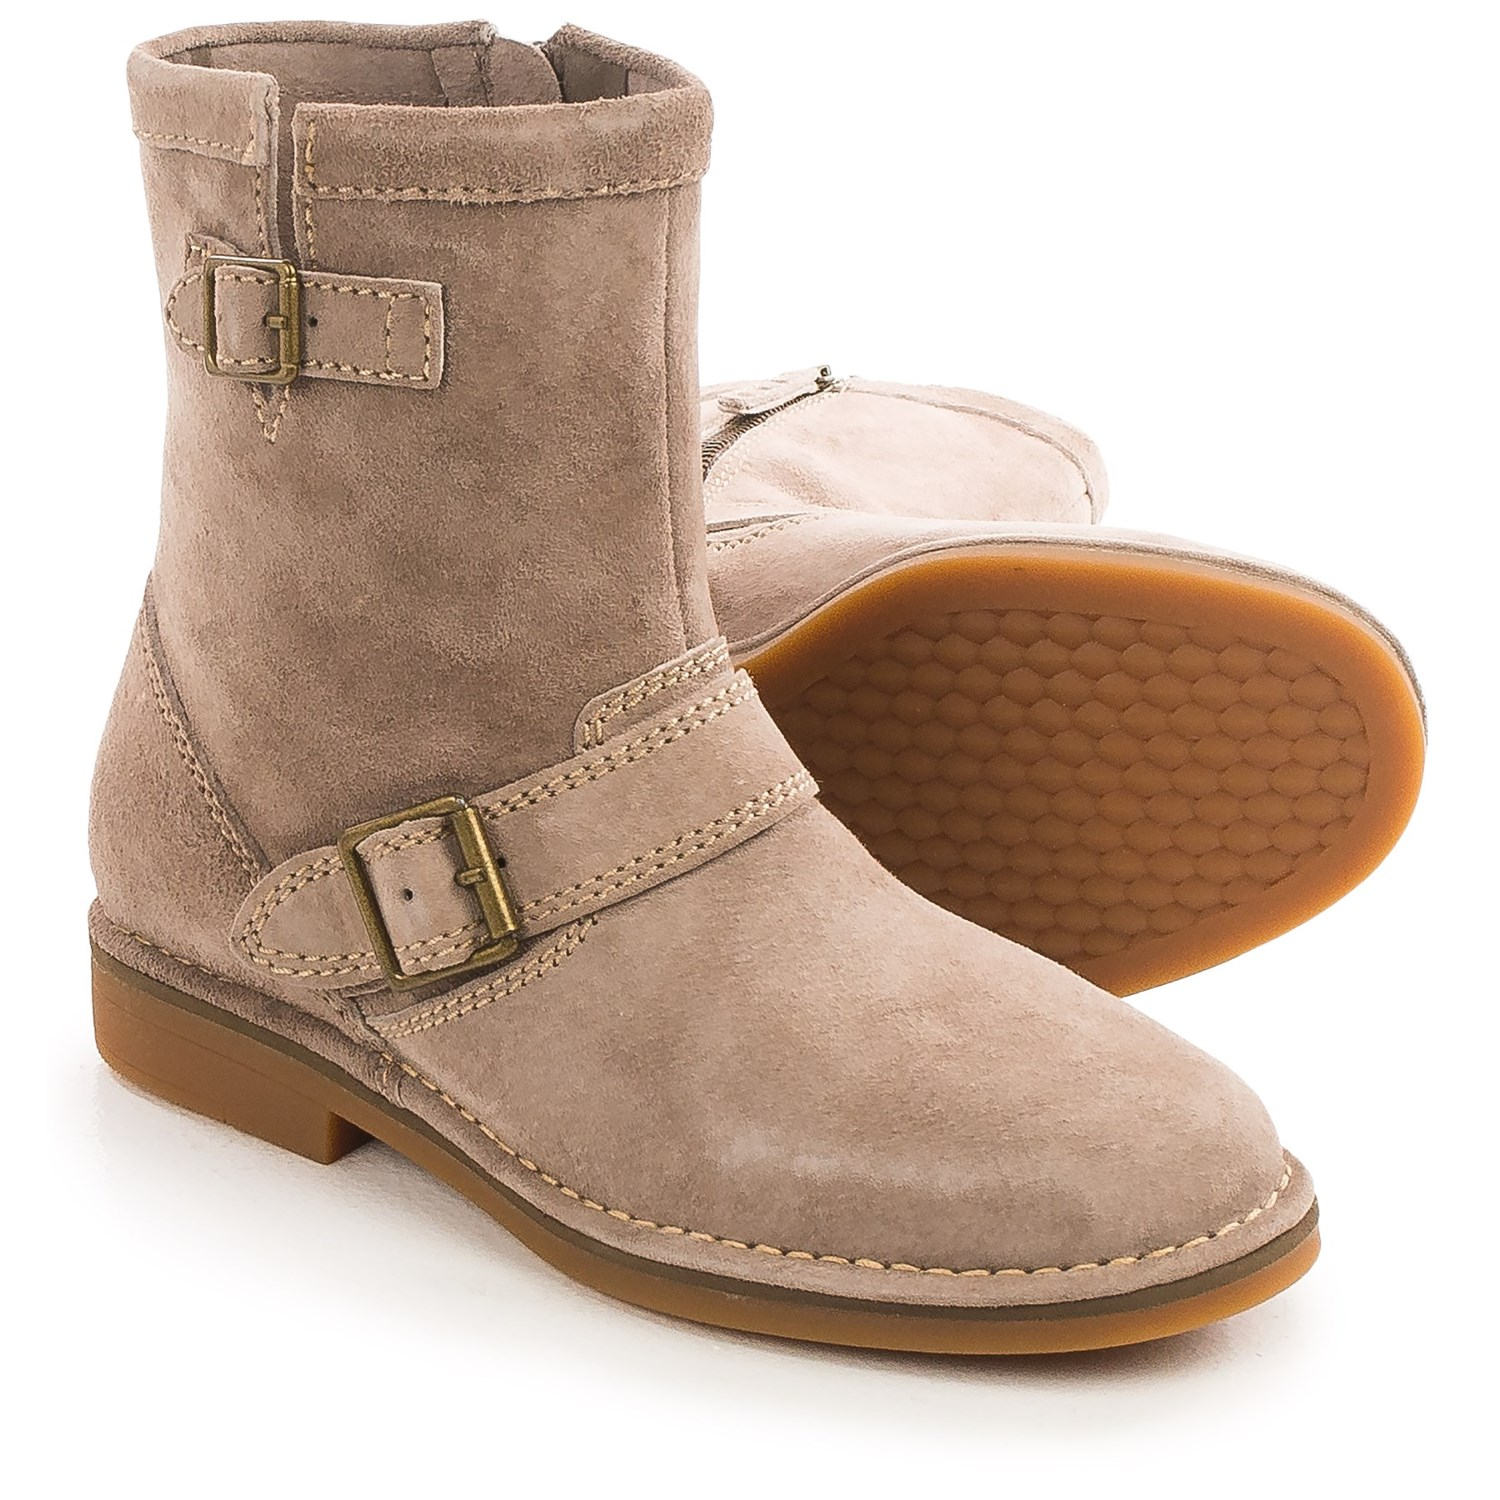 hush-puppies-aydin-catelyn-boots-suede-side-zip-for-women-in-taupe-suede~p~178jp_04~1500.2.jpg